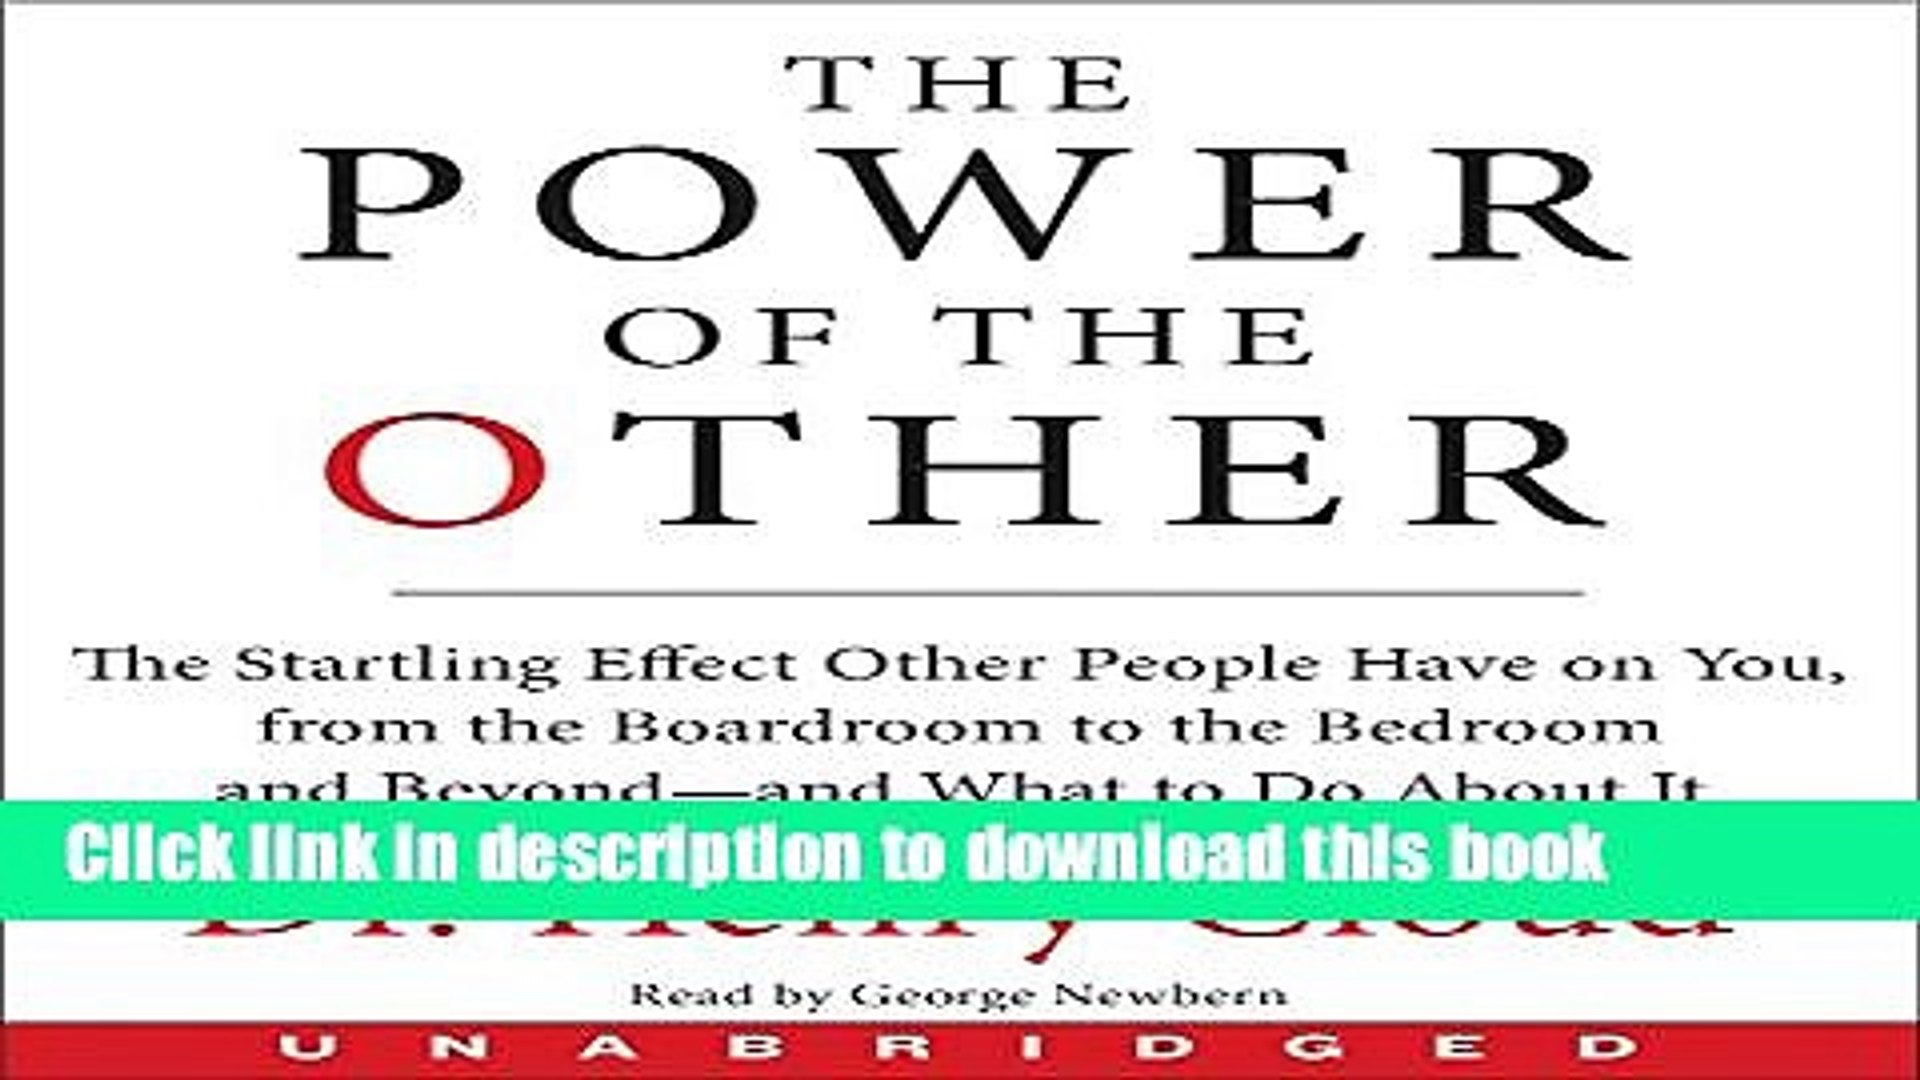 [Popular] The Power of the Other CD: The startling effect other people have on you, from the